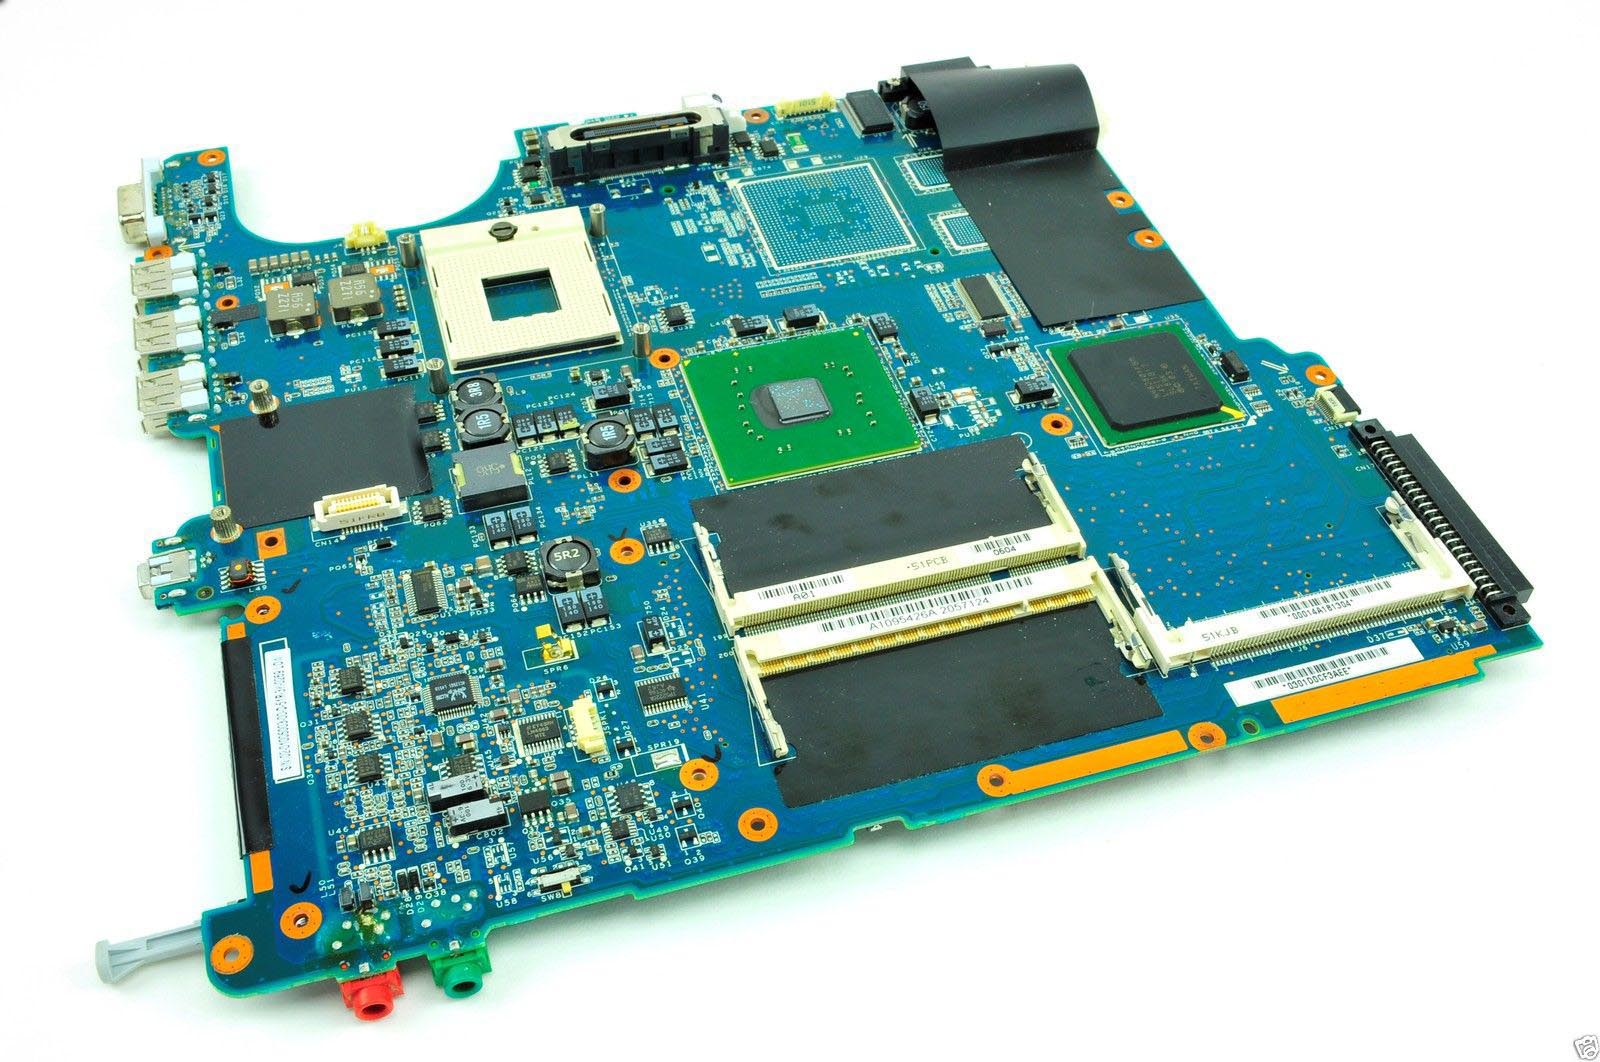 SHELI MBX 130 laptop Motherboard For Sony MBX-130 MS01-M/B A1095426A 1P-0041200-8010 for intel cpu with integrated graphics card sheli mbx 235 laptop motherboard for sony m932 mbx 235 1p 0107j00 8011 a1796418a for intel cpu with non integrated graphics card